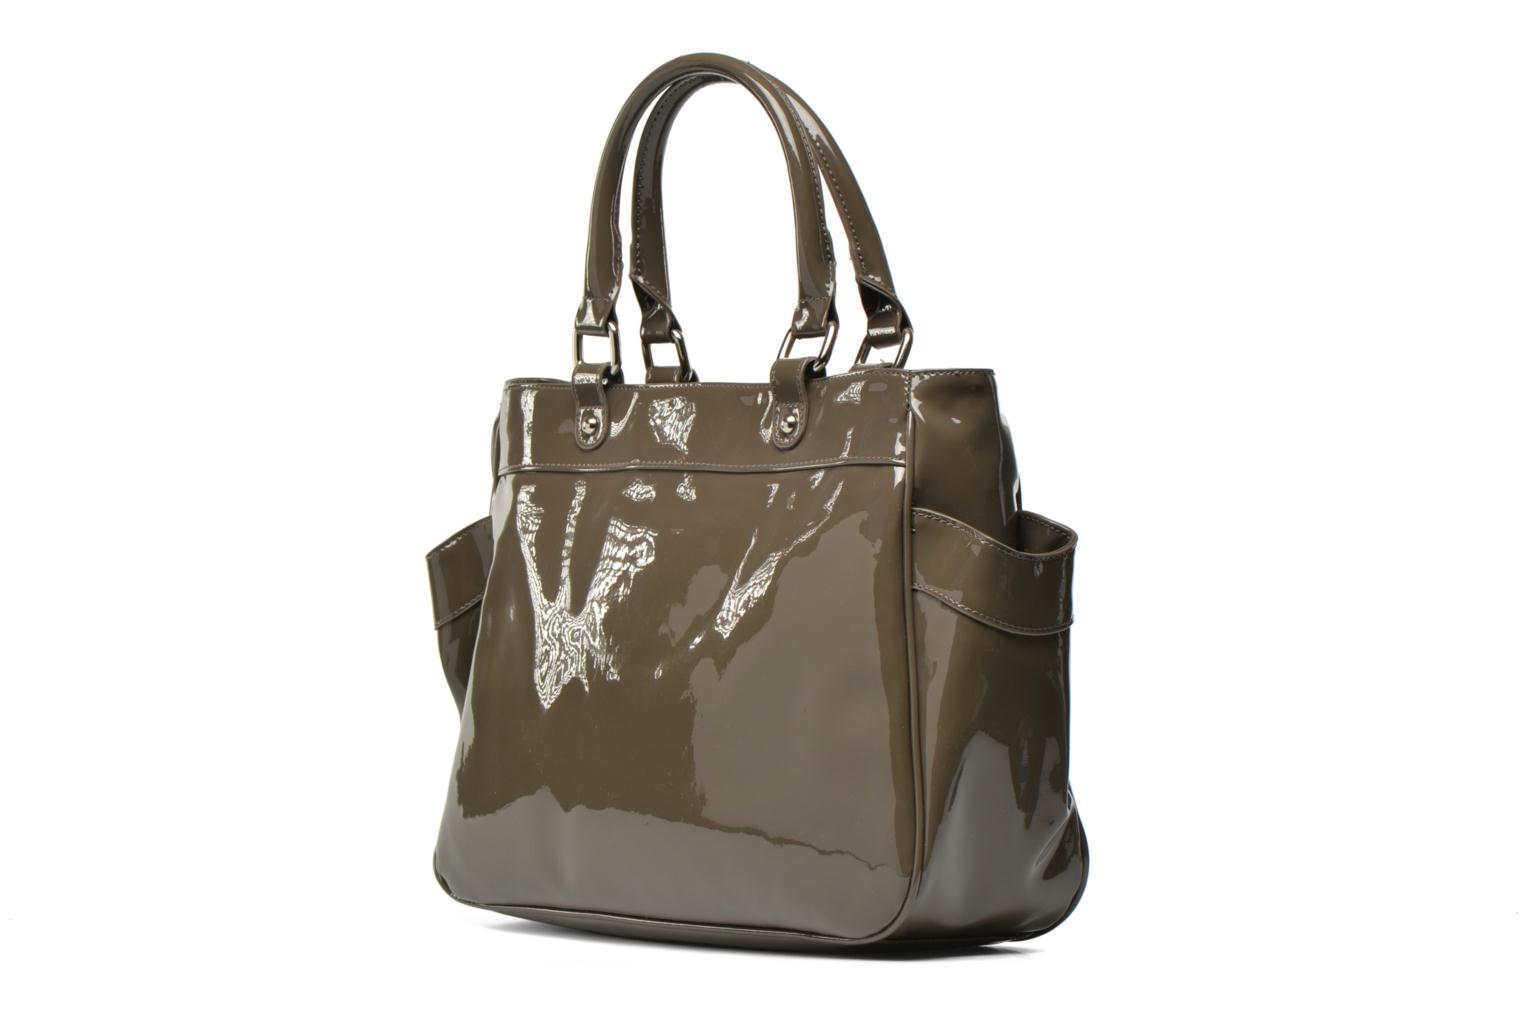 Handbags Les P'tites Bombes Sac Vernis Brown view from the right